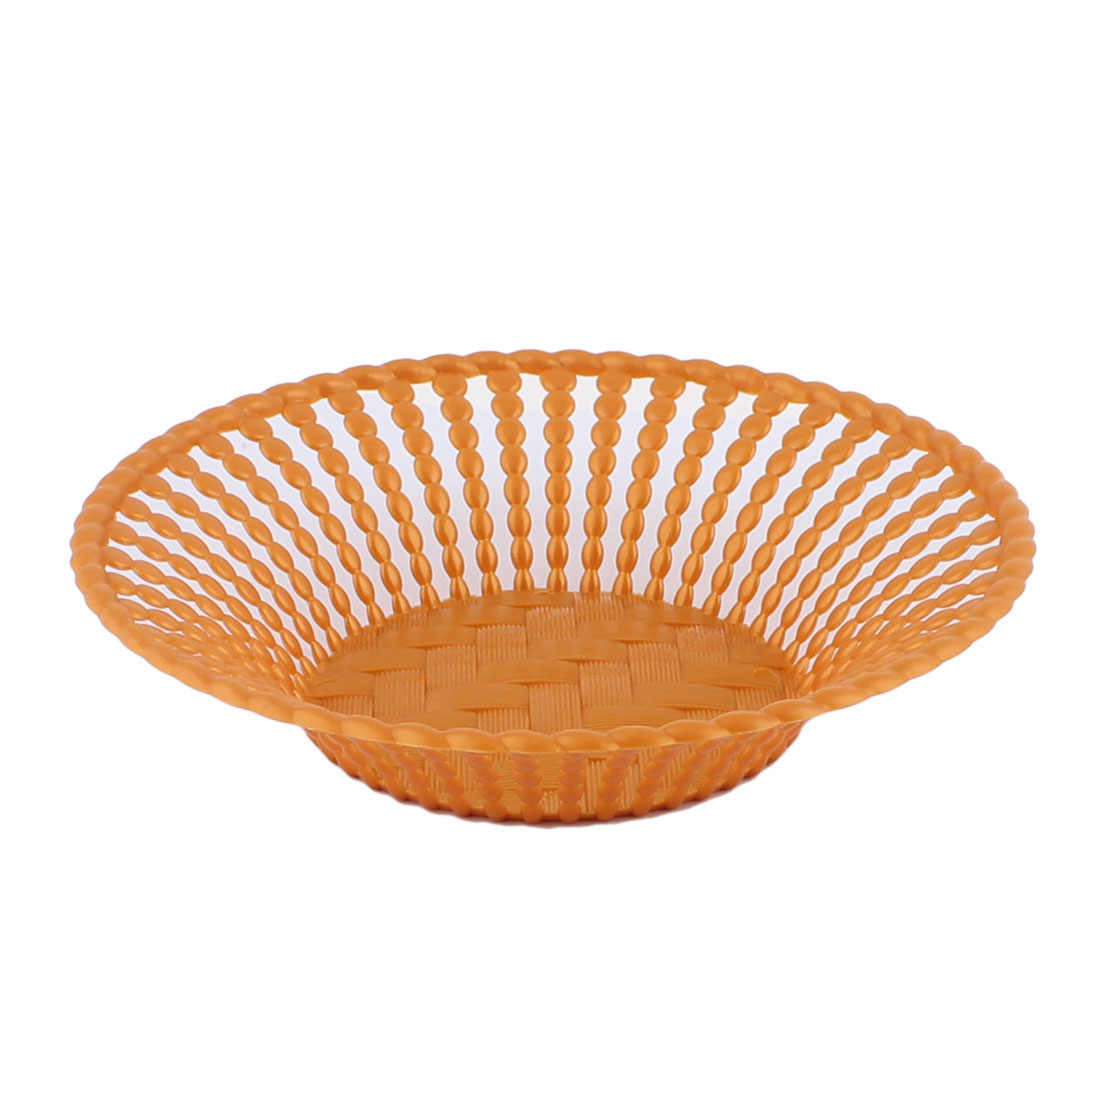 Home Living Room Kitchenware Plastic Round Shaped Hollow Out Fruit Plate Basket Brown